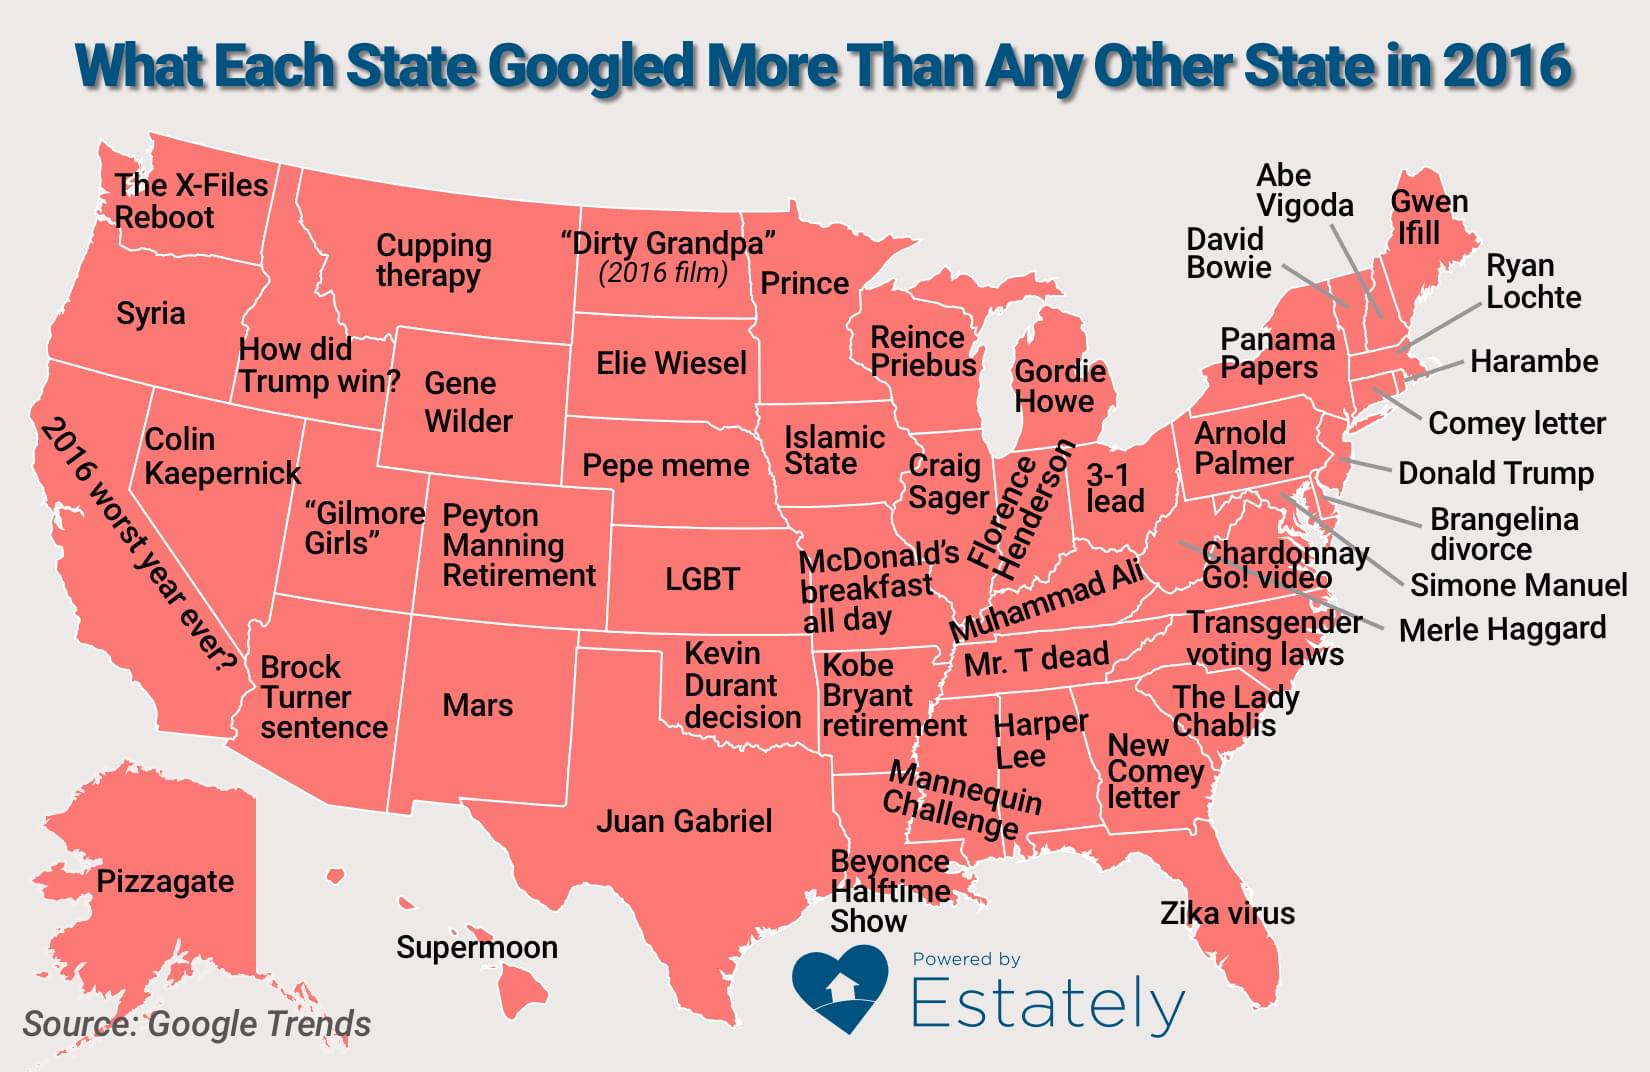 What Each State Googled More Frequently Than Any Other State in 2016